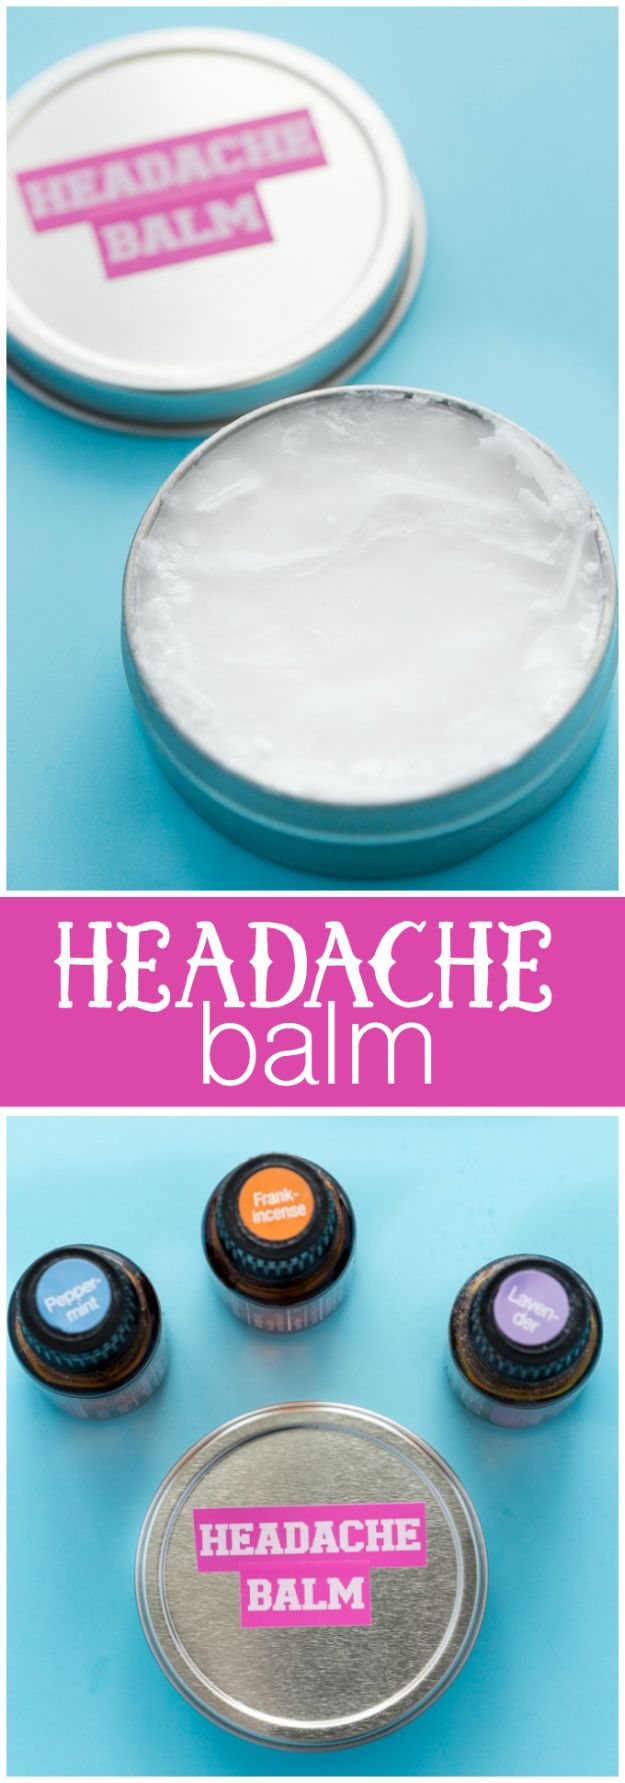 DIY Essential Oil Recipes and Ideas - Headache Balm - Cool Recipes, Crafts and Home Decor to Make With Essential Oil - Diffuser Projects, Roll On Prodicts for Skin - Recipe Tutorials for Cleaning, Colds, For Sleep, For Hair, For Paint, For Weight Loss http://diyjoy.com/diy-ideas-essential-oils